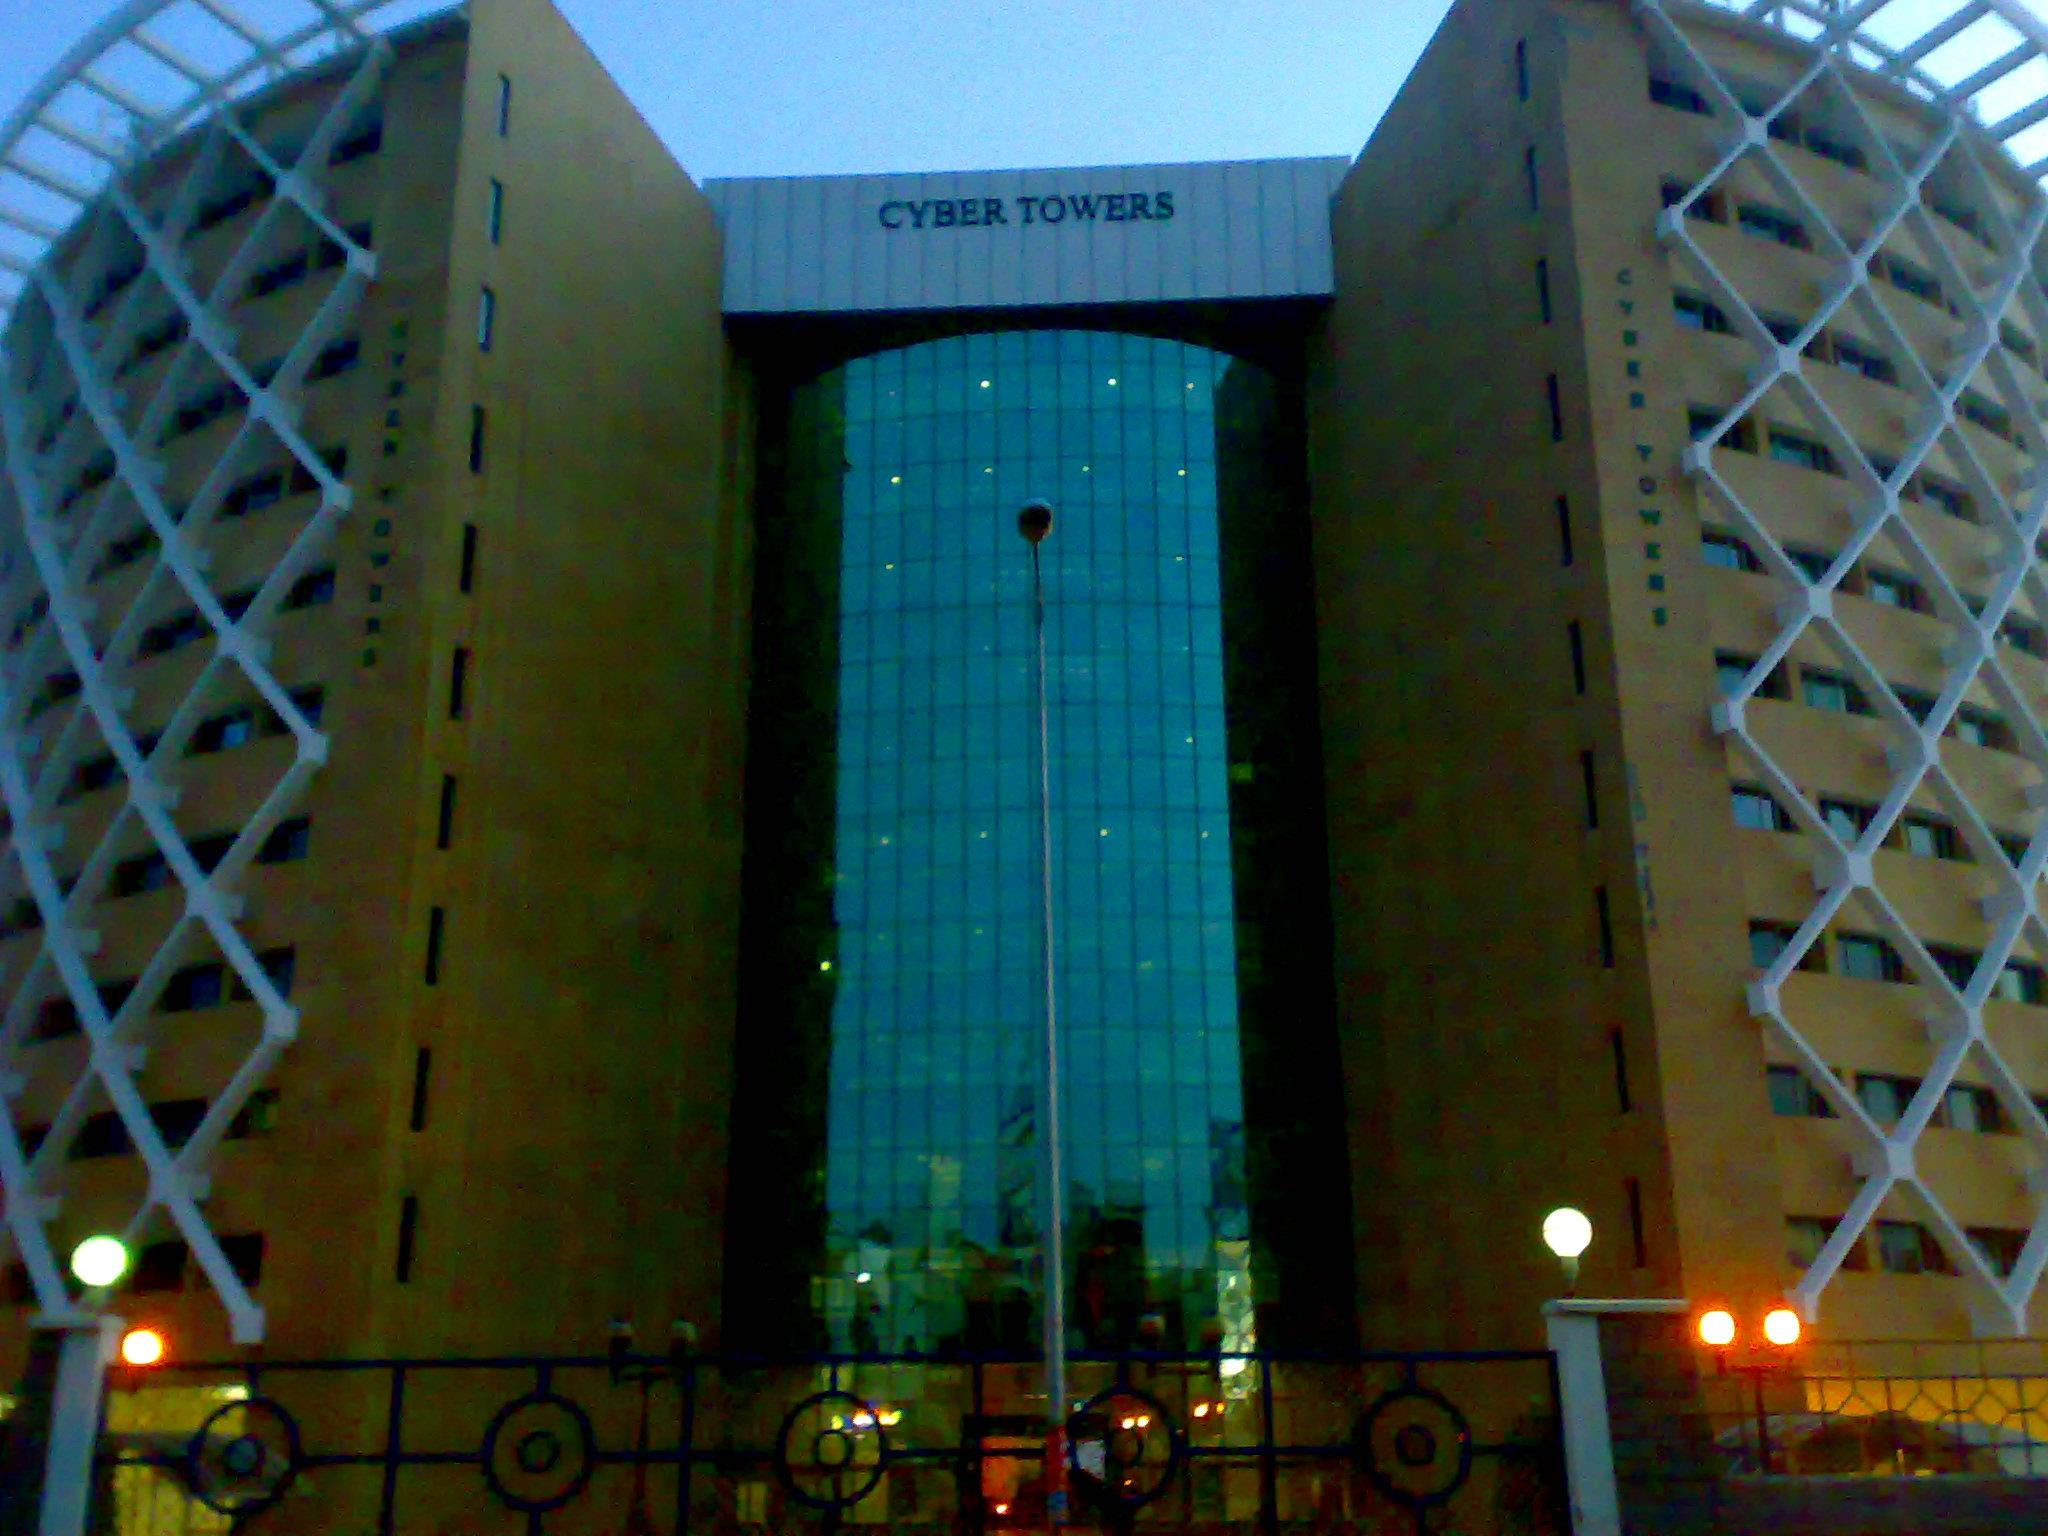 File:Cyber Tower, Hitech city,Madhapur, hyderbad.jpg ...